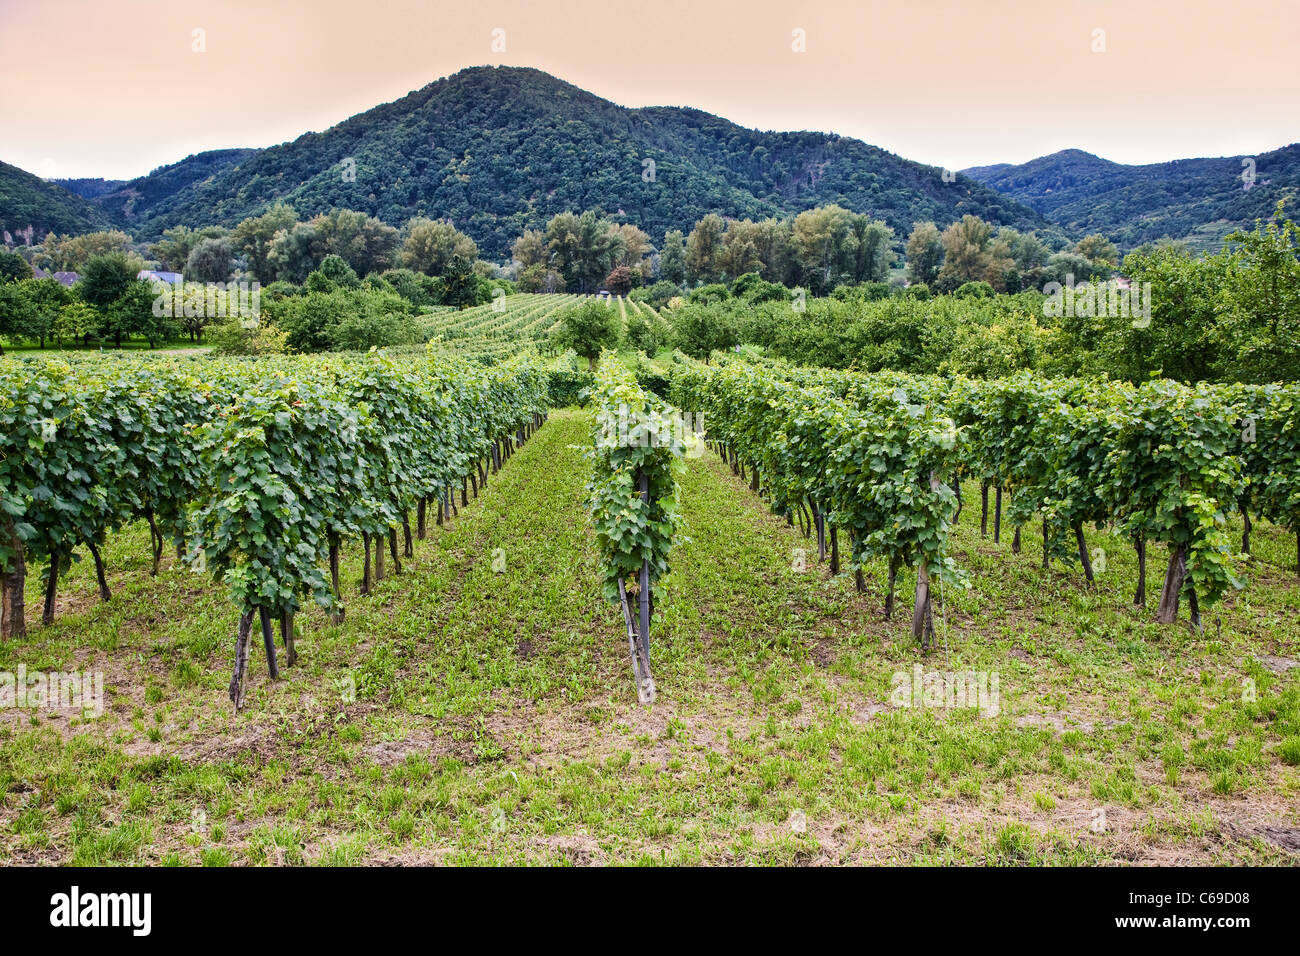 Vineyards at Durnstein in the Wachau Valley, Austria - Stock Image